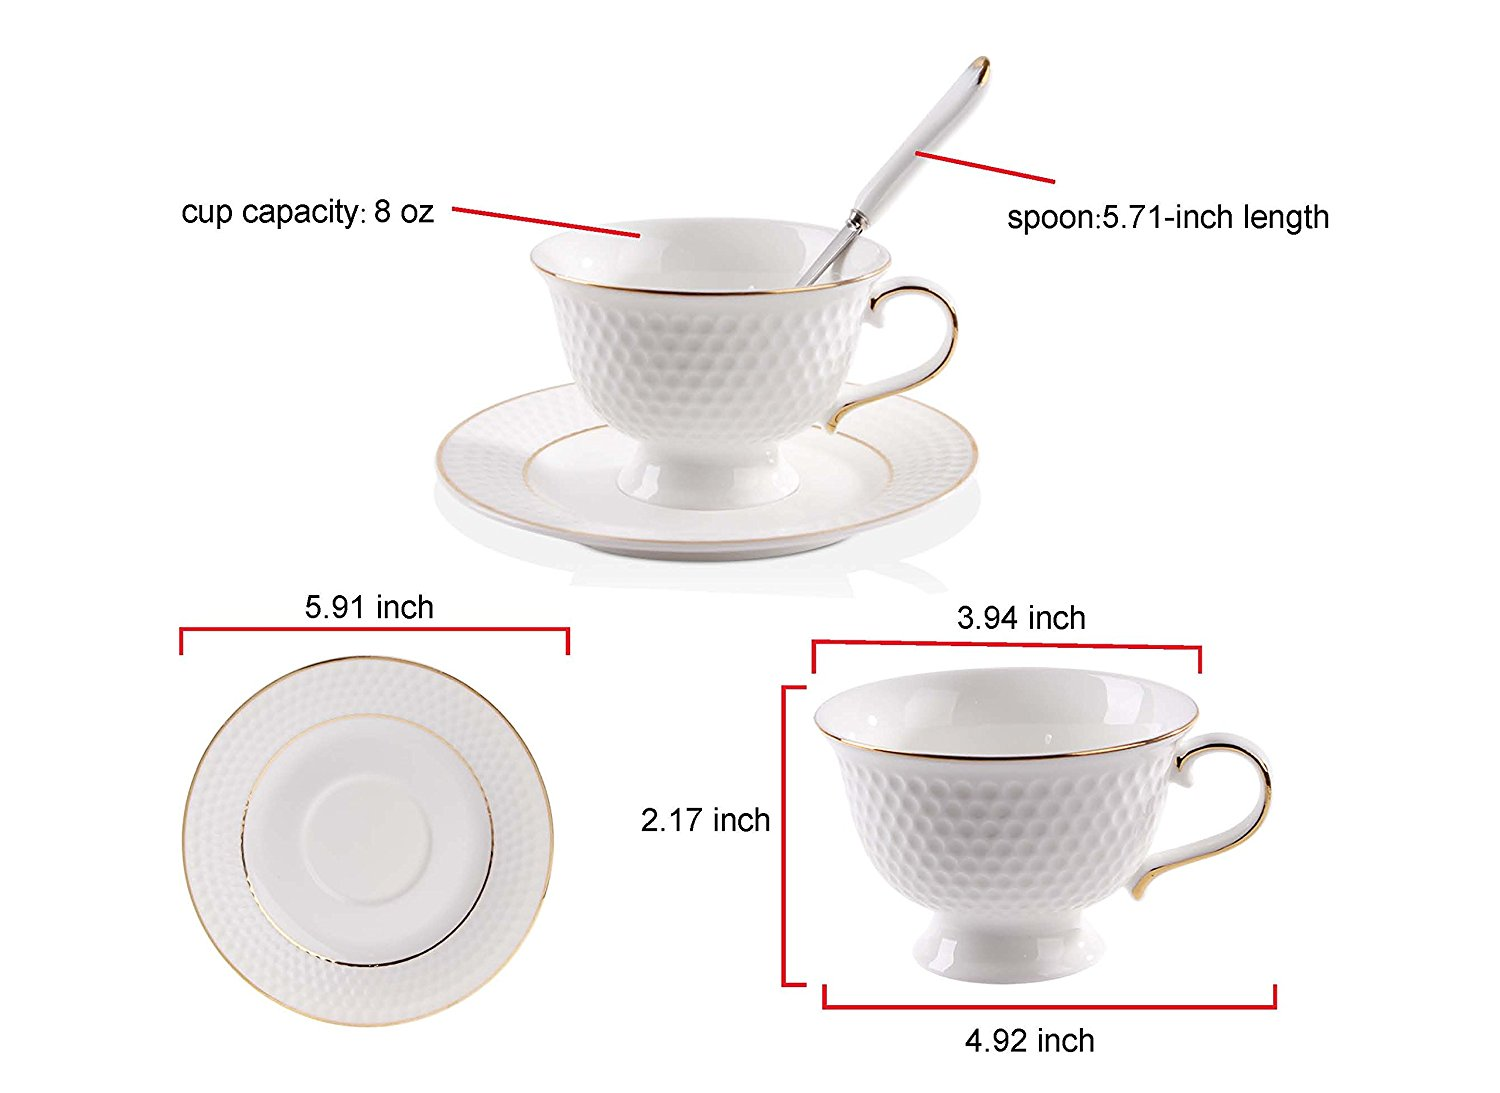 Porcelain Tea Cup And Saucer Coffee Set With Spoon Of 6 Si Glf W